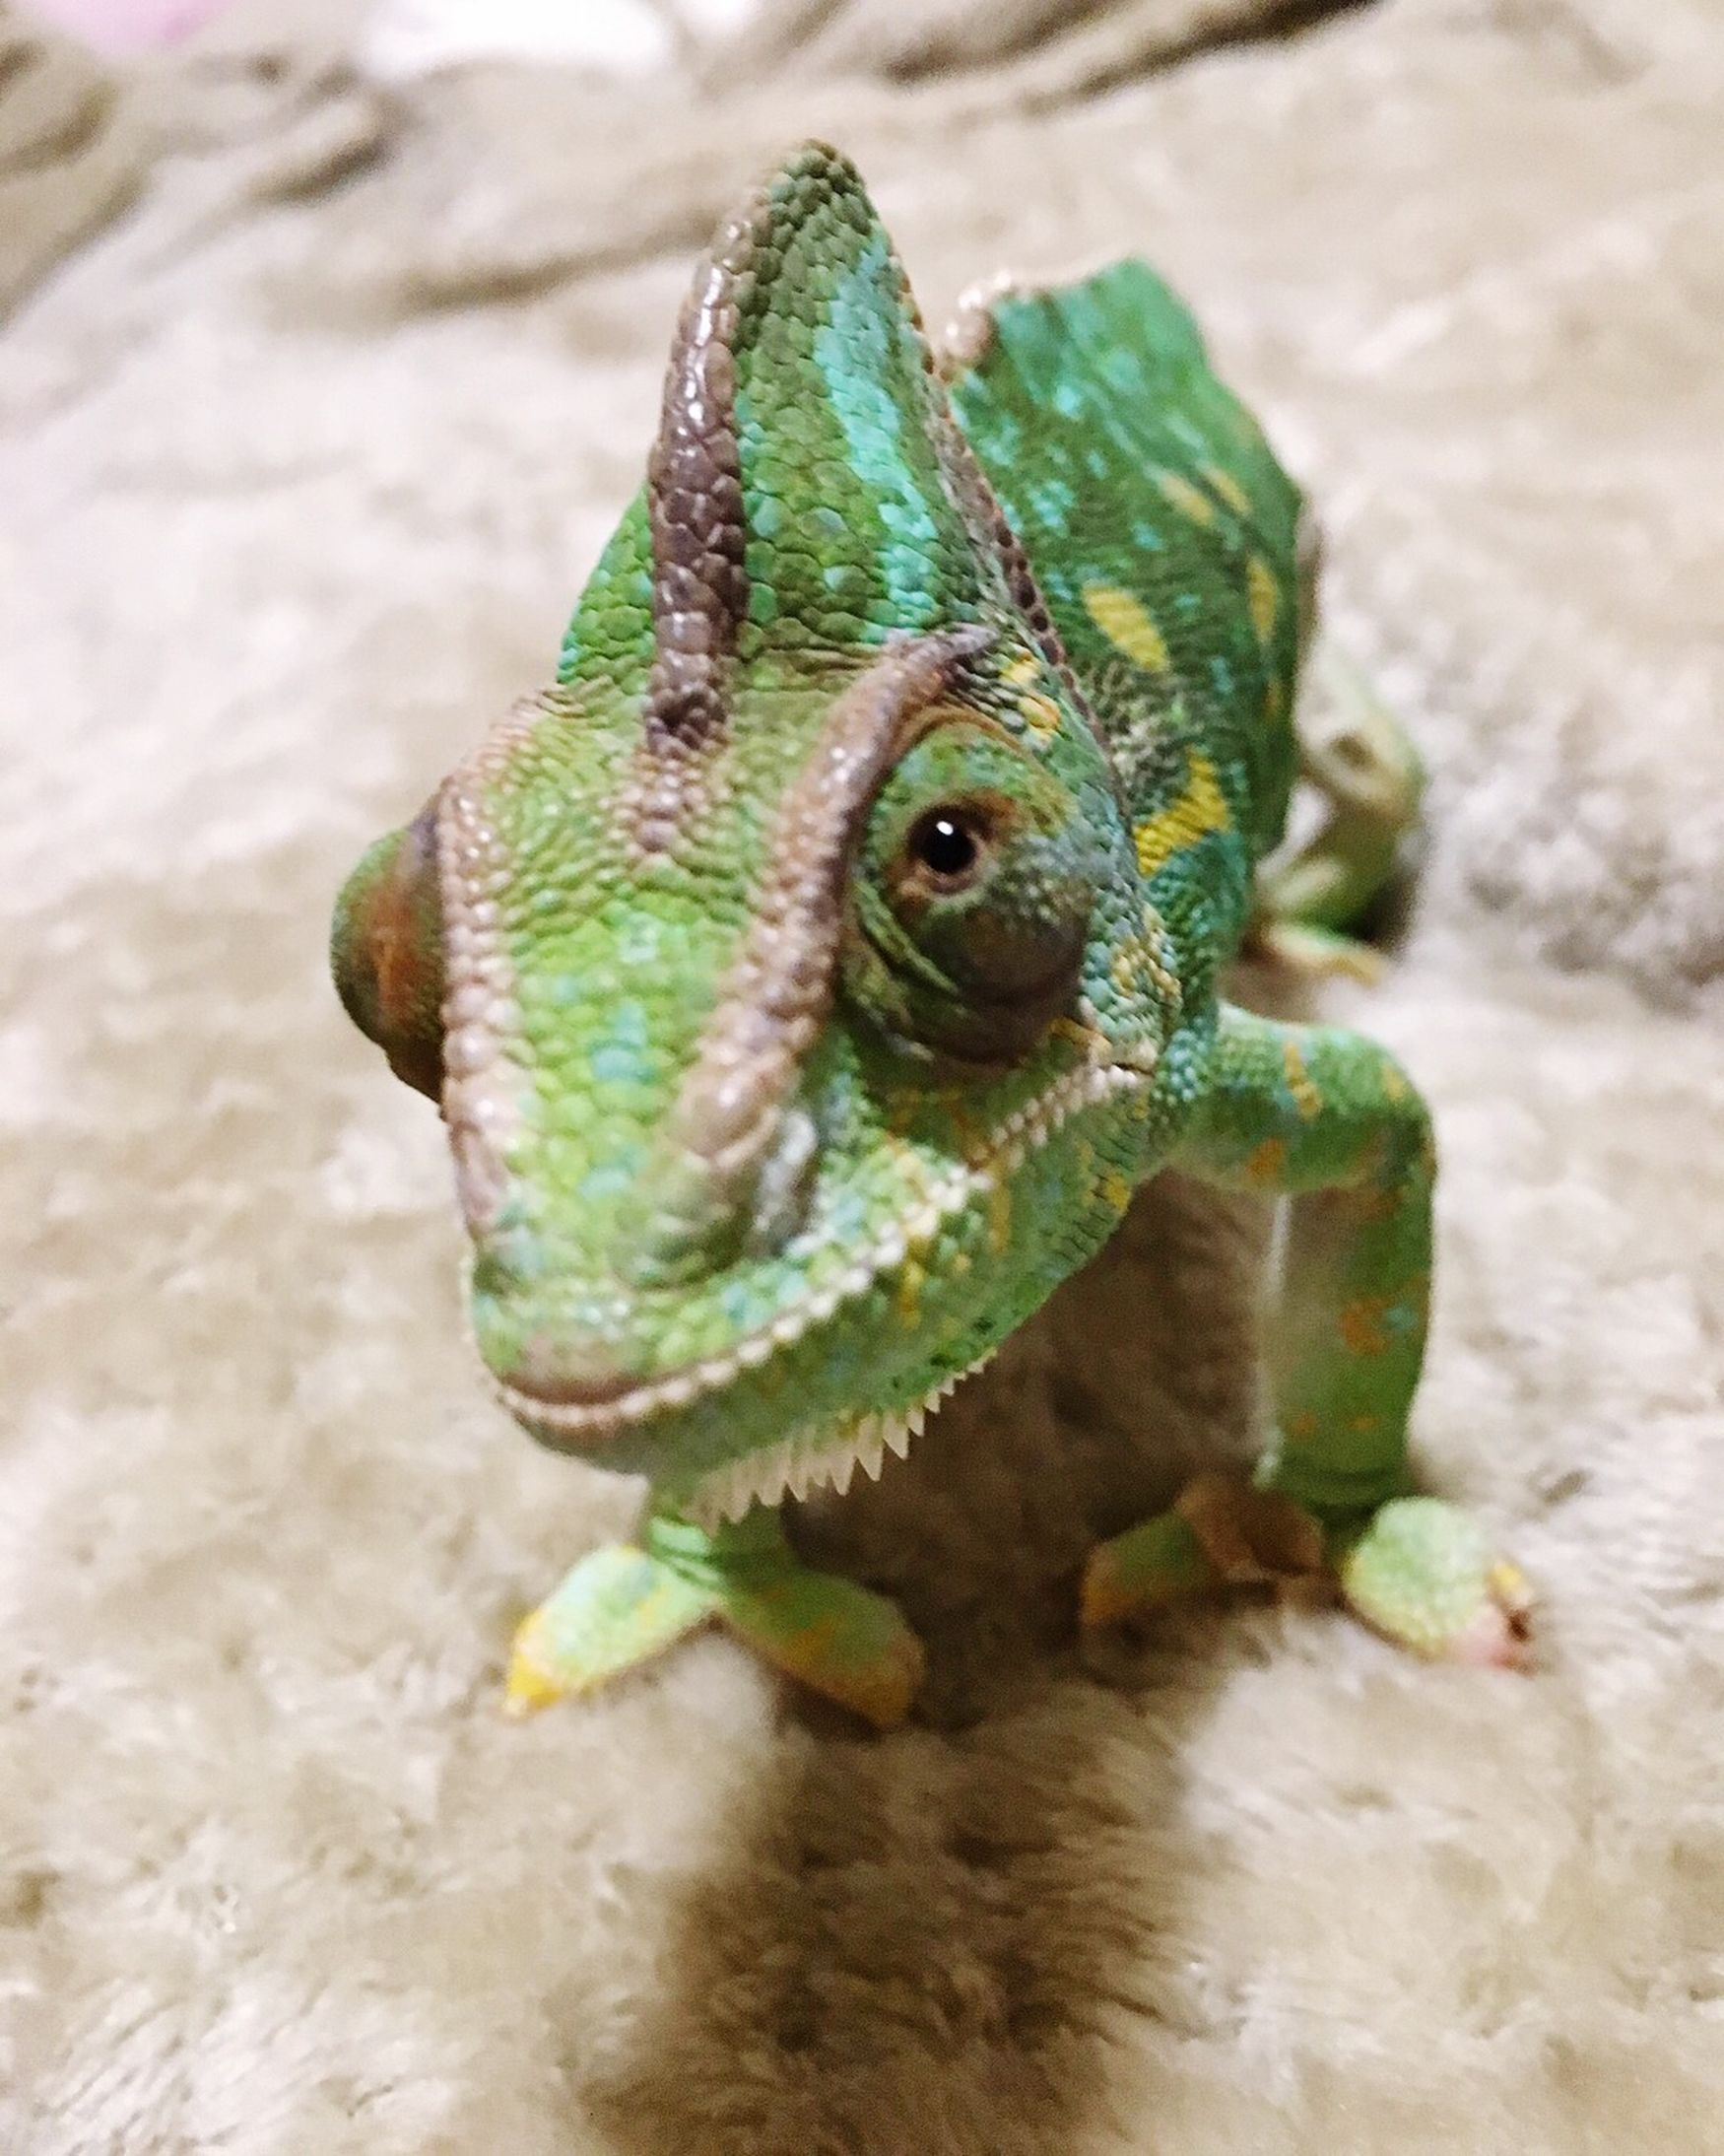 Chameleon Eye Green Color Reptile Animal Themes Close-up Chameleon Nature